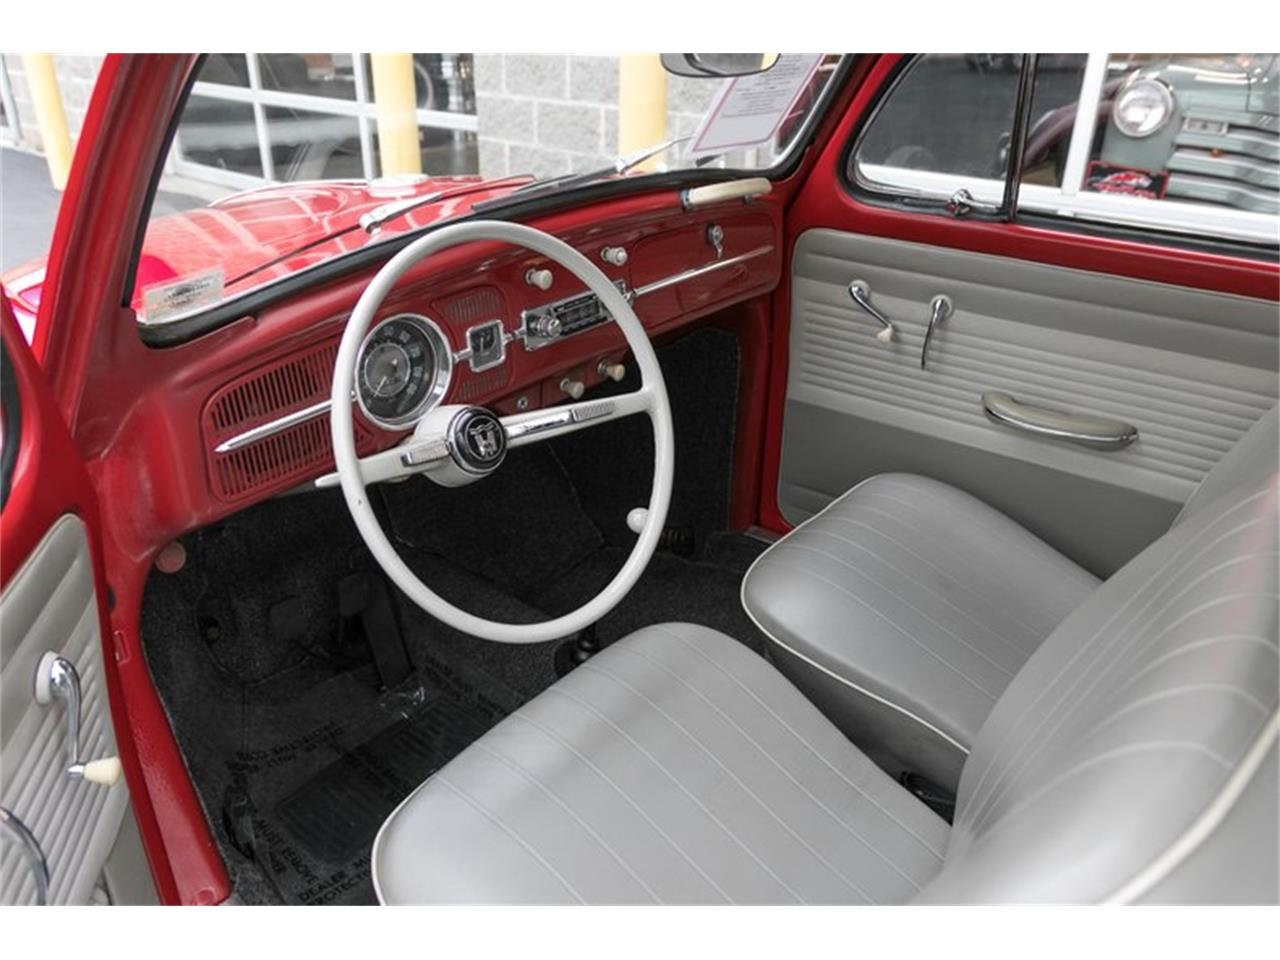 Large Picture of 1964 Volkswagen Beetle located in Missouri - $17,500.00 Offered by Fast Lane Classic Cars Inc. - MTLO